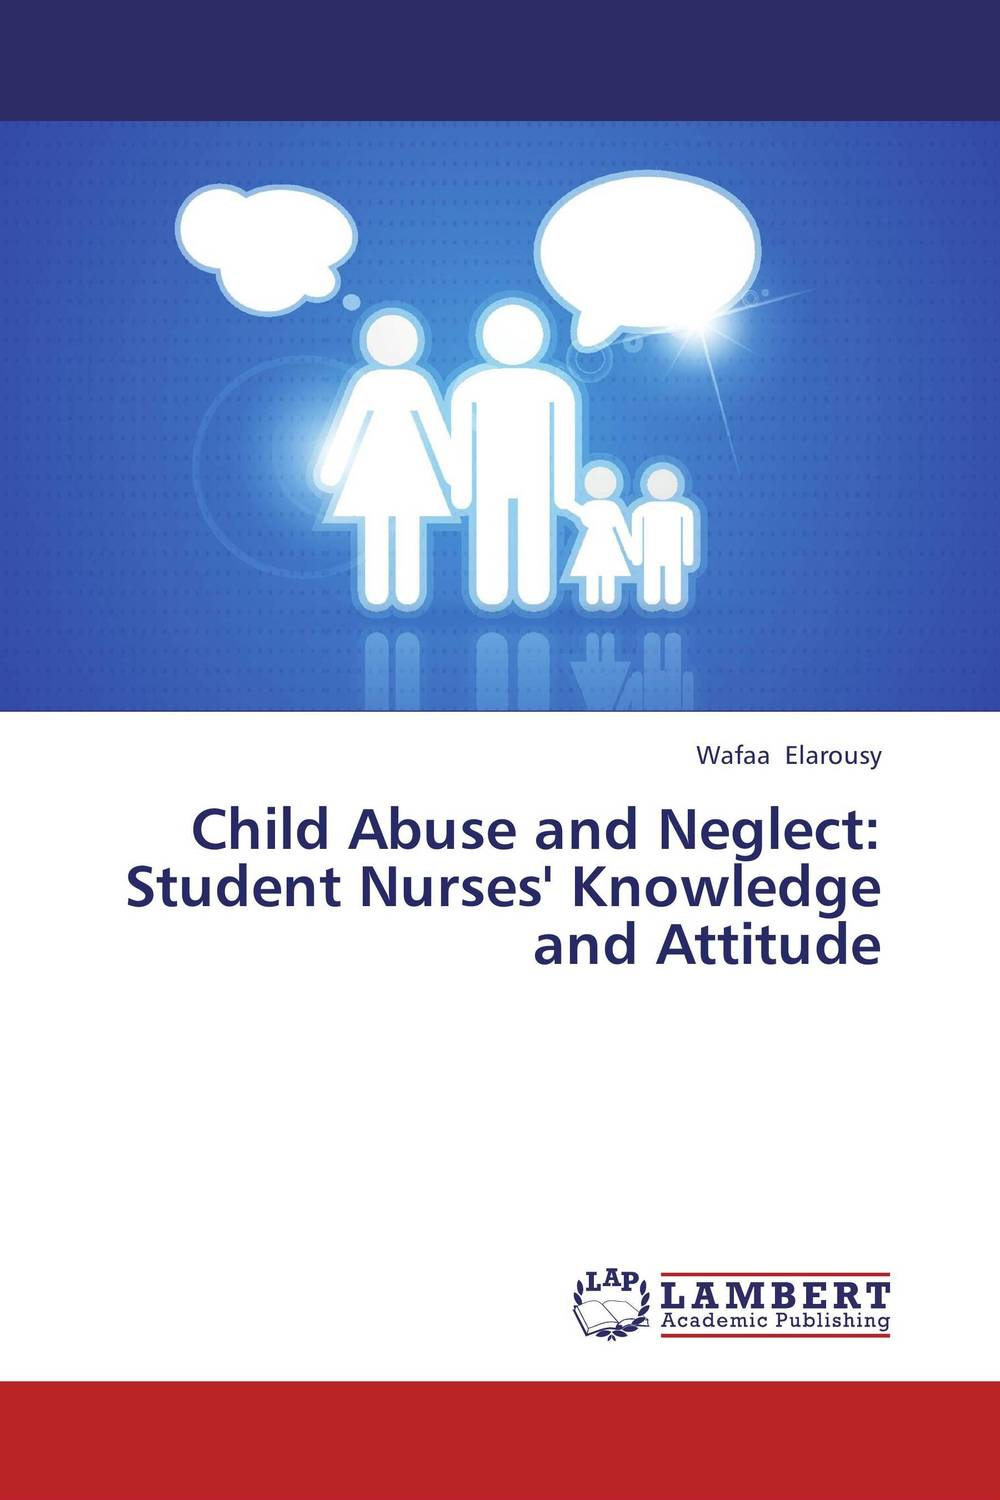 Child Abuse and Neglect: Student Nurses' Knowledge and Attitude jeb myers evidence in child abuse and neglect